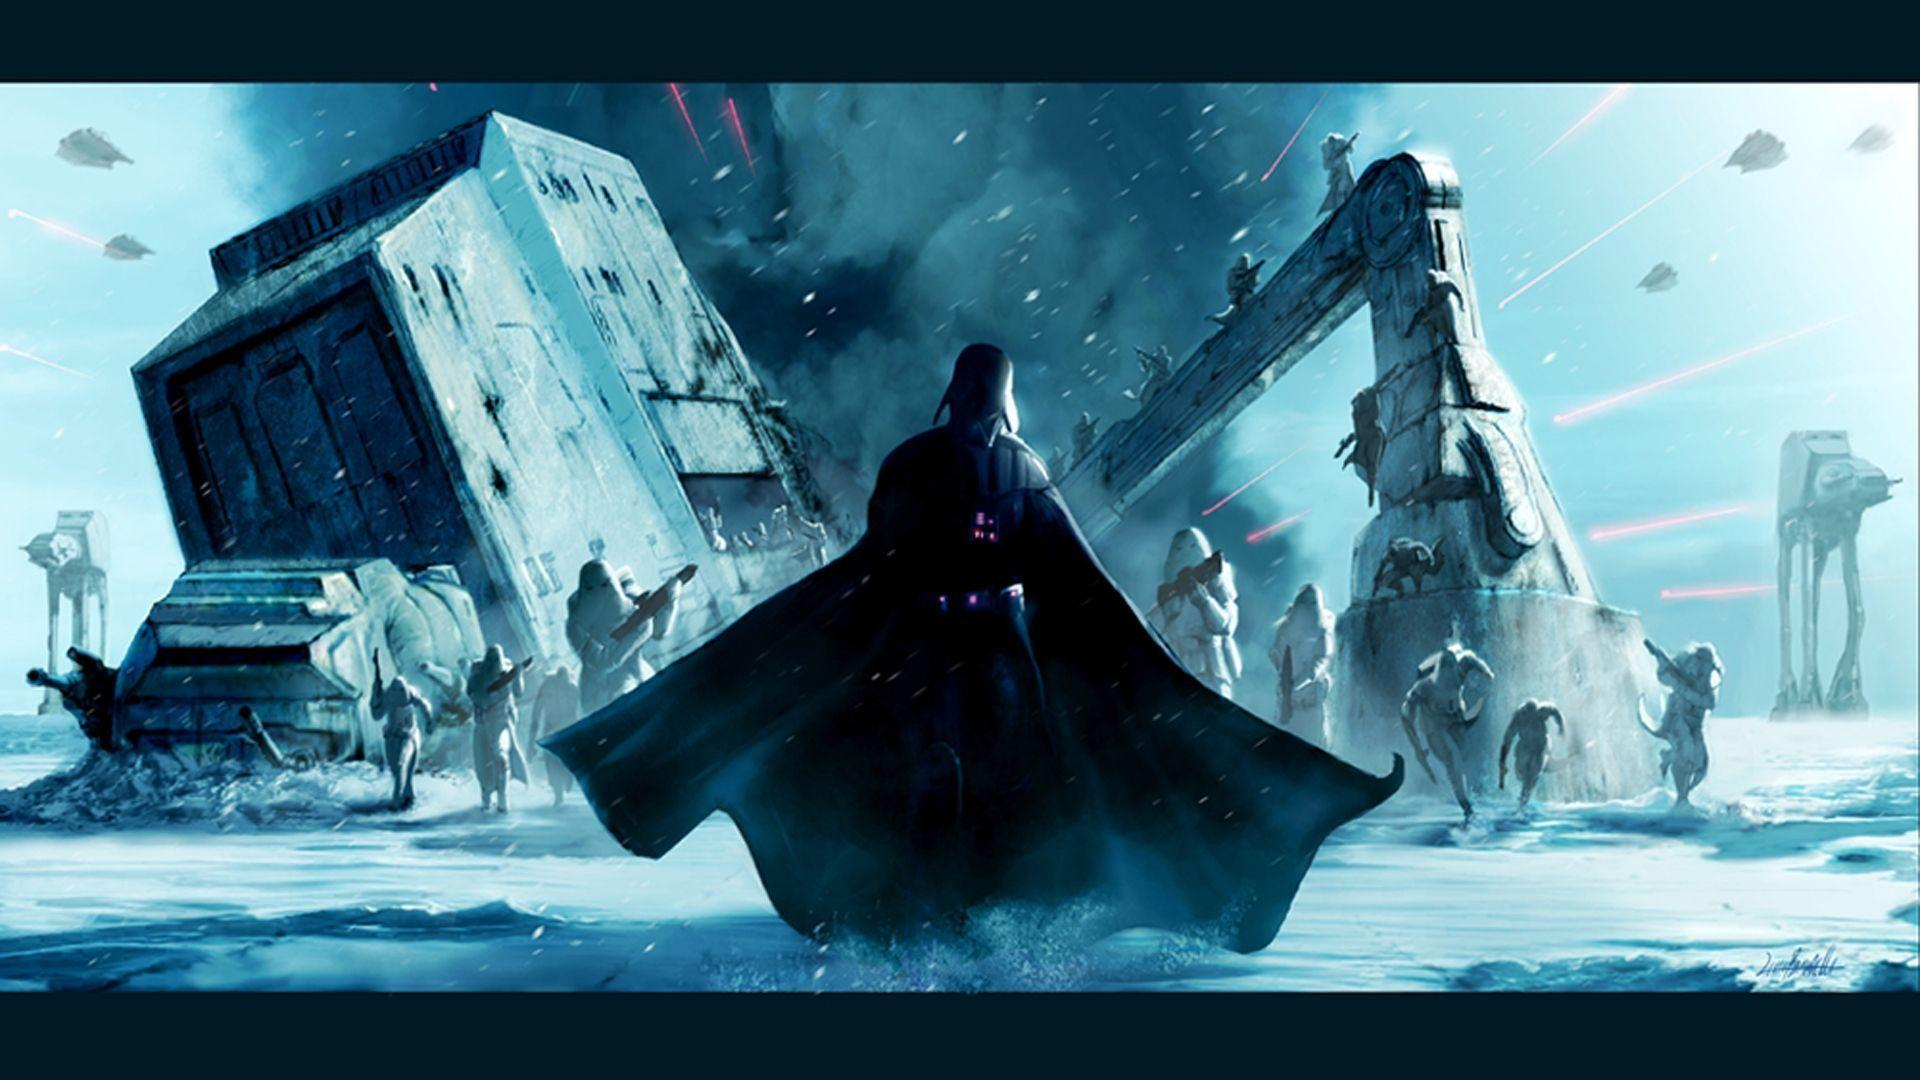 Best Star Wars Backgrounds Posted By Ryan Cunningham